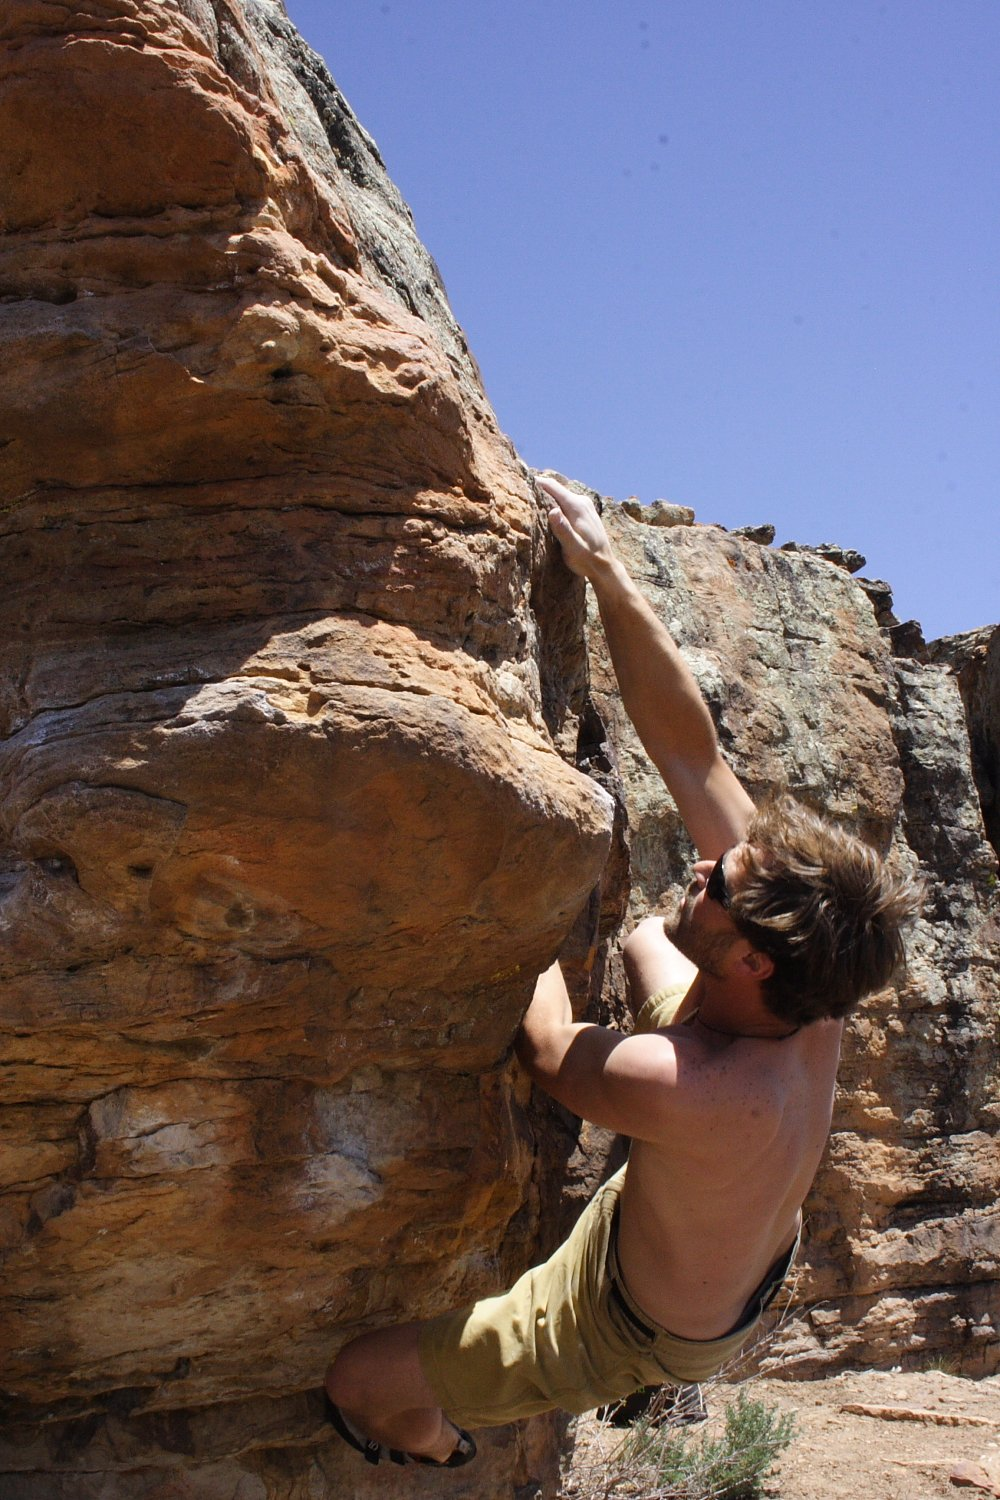 Bouldering Almont Colorado Photo Mike Hardaker | Mountain Weekly News Photo